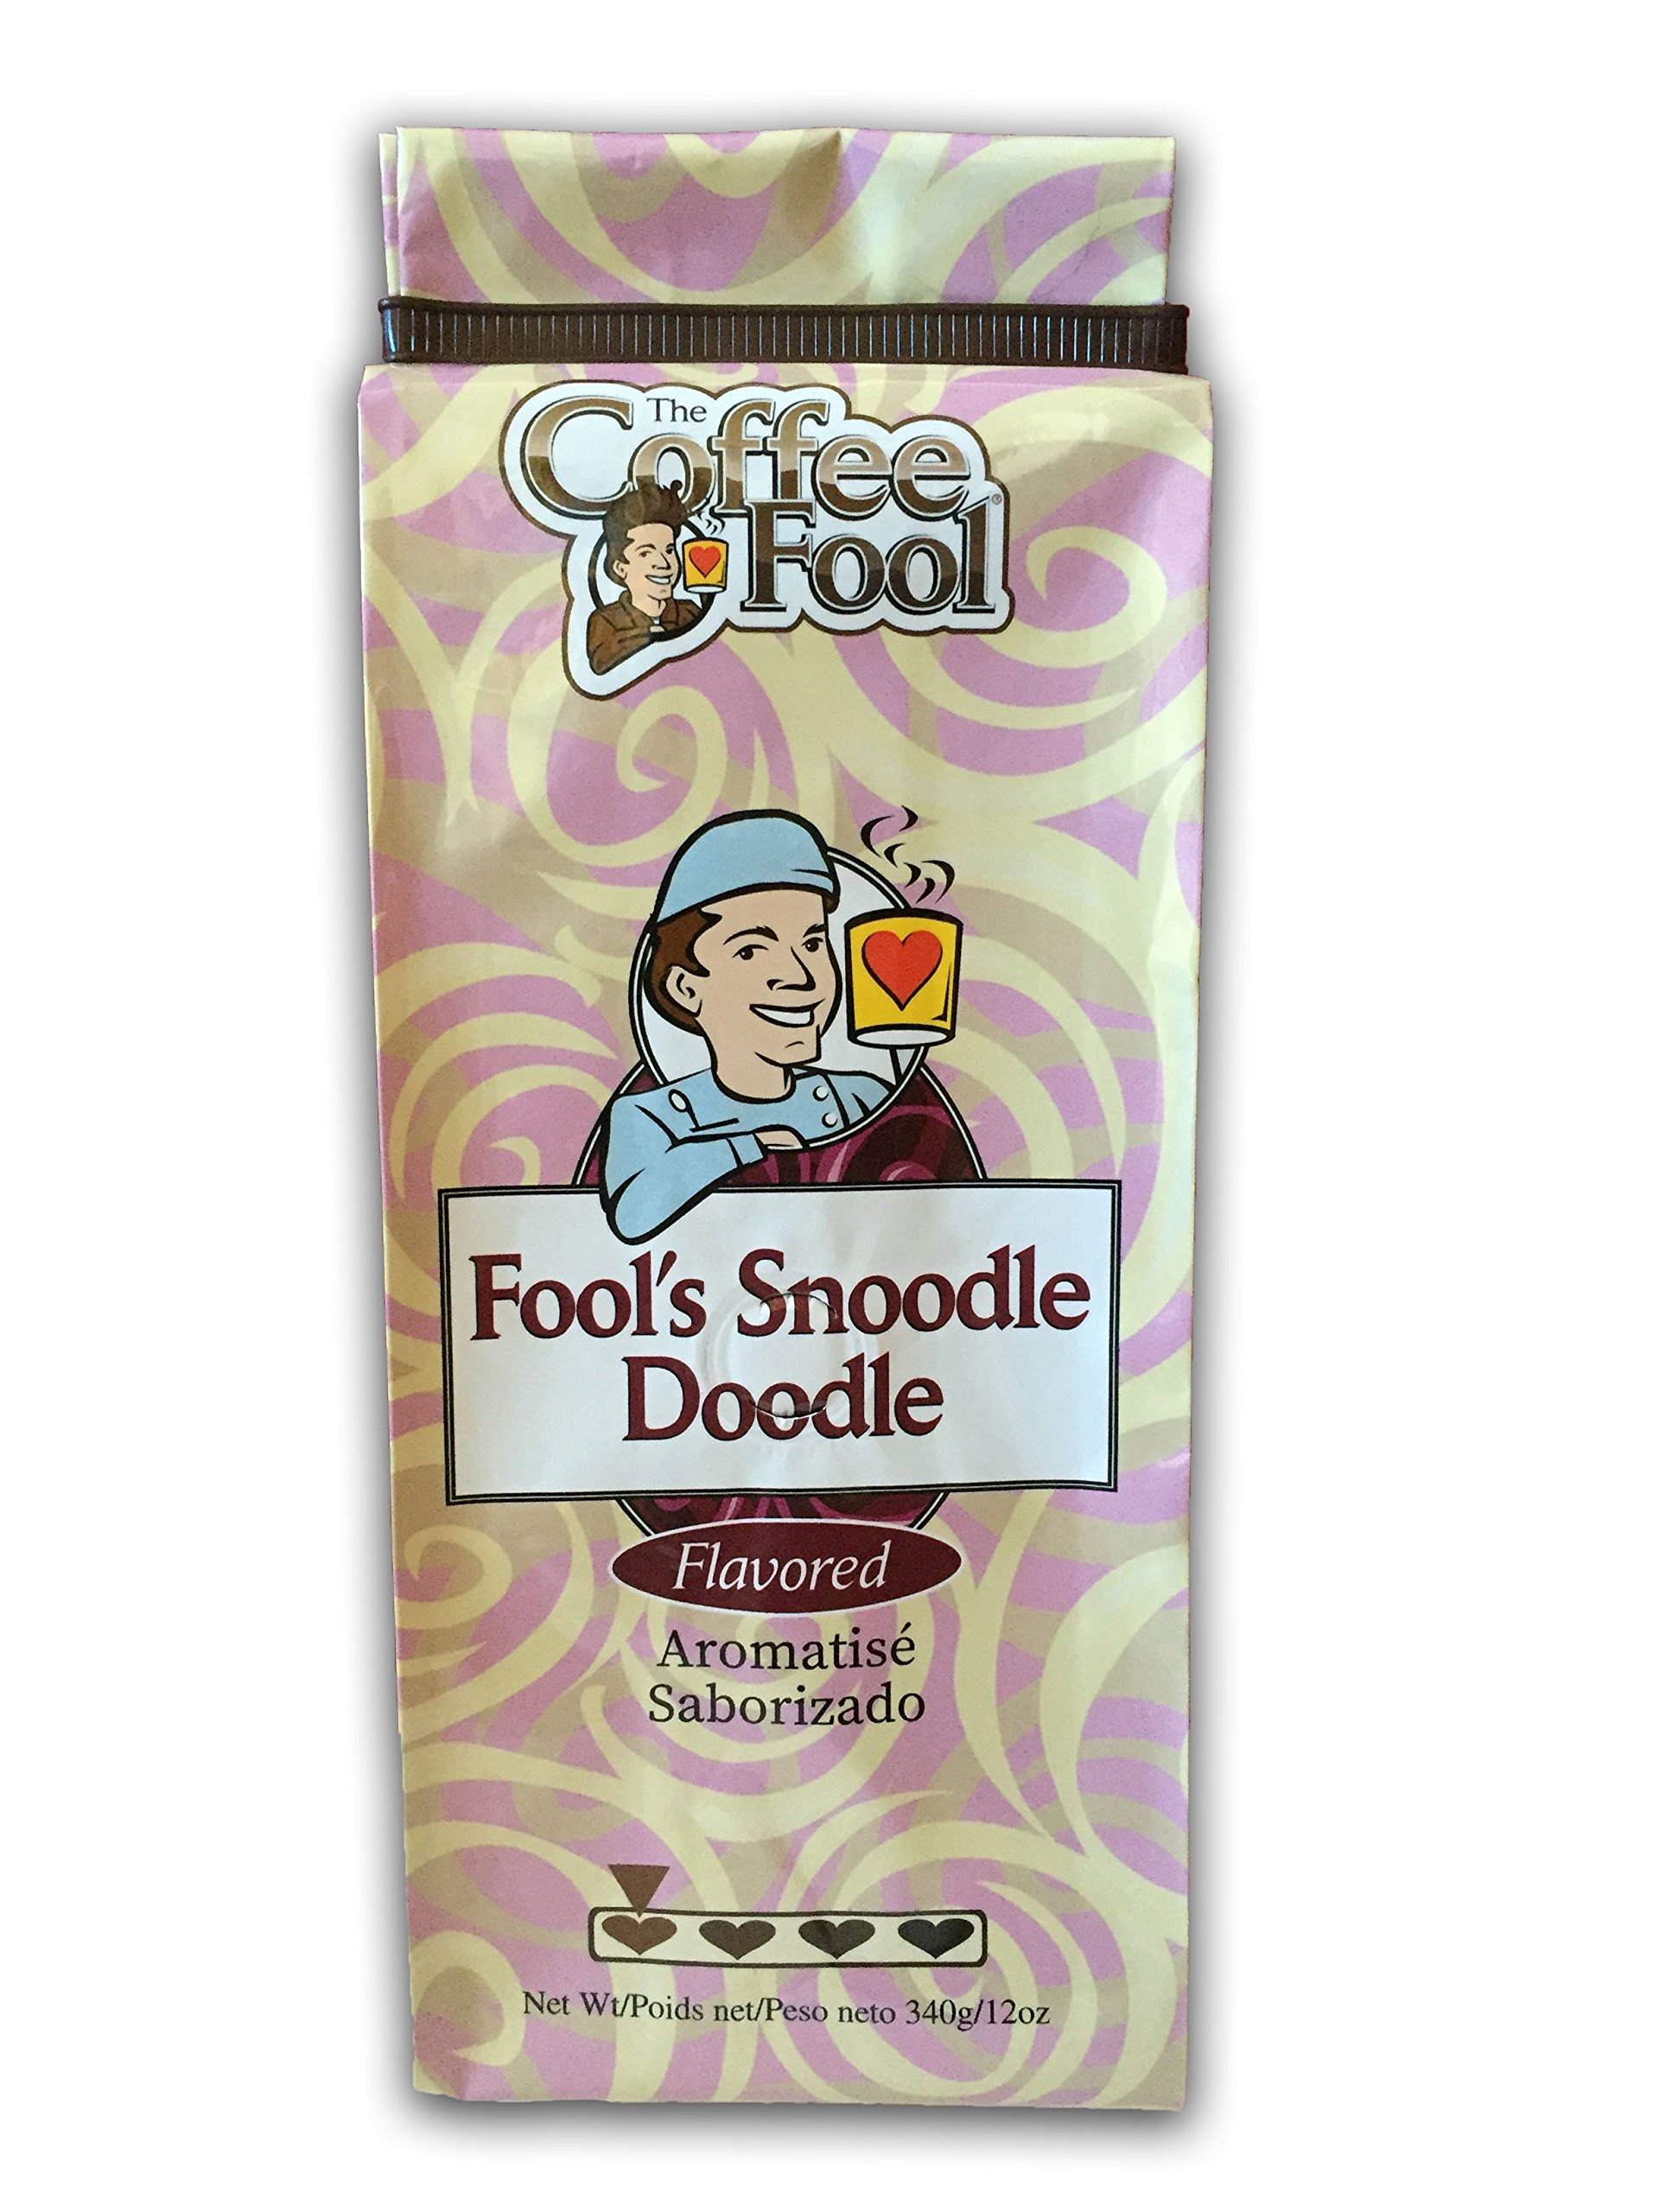 The Coffee Fool Turkish (Powder) Coffee, Fool's Snoodle-Doodle, 12 Ounce by The Coffee Fool